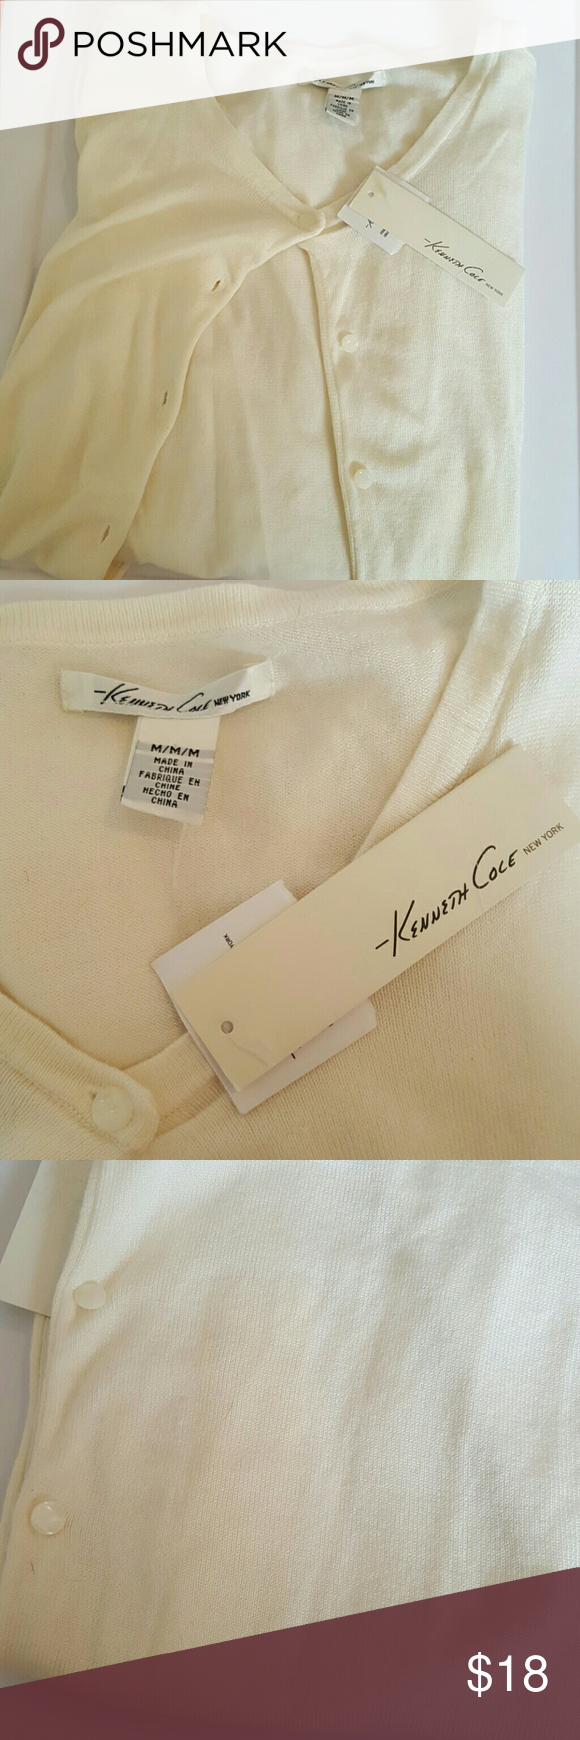 Kenneth Cole long sleeve cardigan New with tags. No damage. There is a spot you can see (in 3rd picture) from me removing the sizing sticker. I just did not want to remove the tags and wash it if I was never going to wear it. It should be no problem coming off. This is a long cardigan with long sleeves as well. Super light and soft too! Comes from a smoke free home. Kenneth Cole Sweaters Cardigans